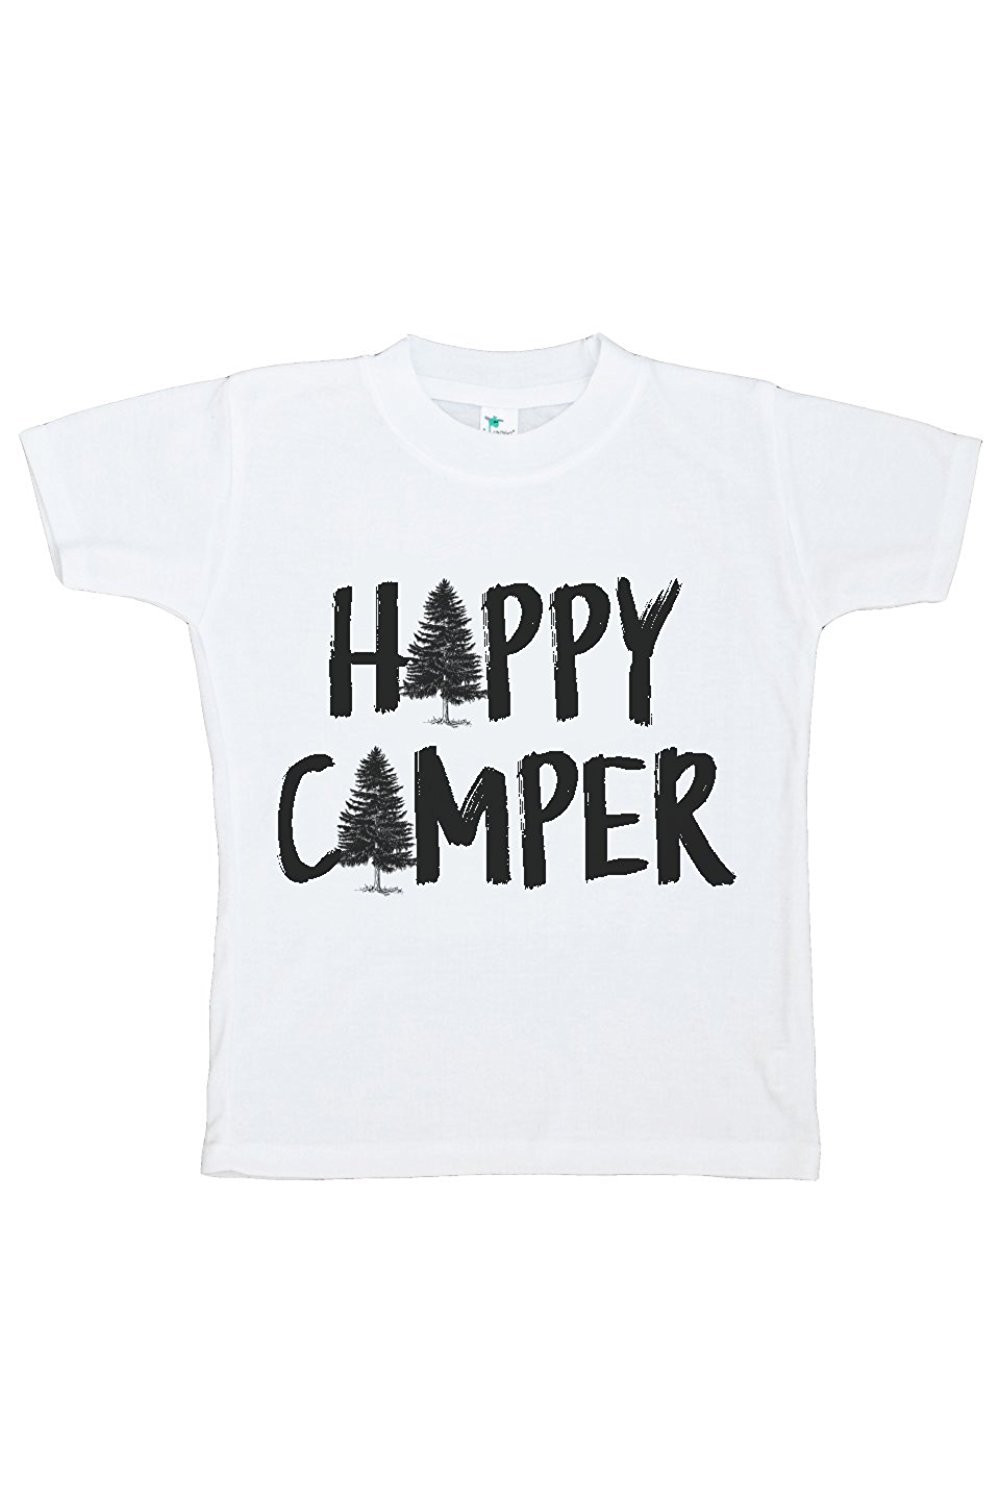 Custom Party Shop Kids Happy Camper Outdoors T-shirt - Large (14-16) T-shirt